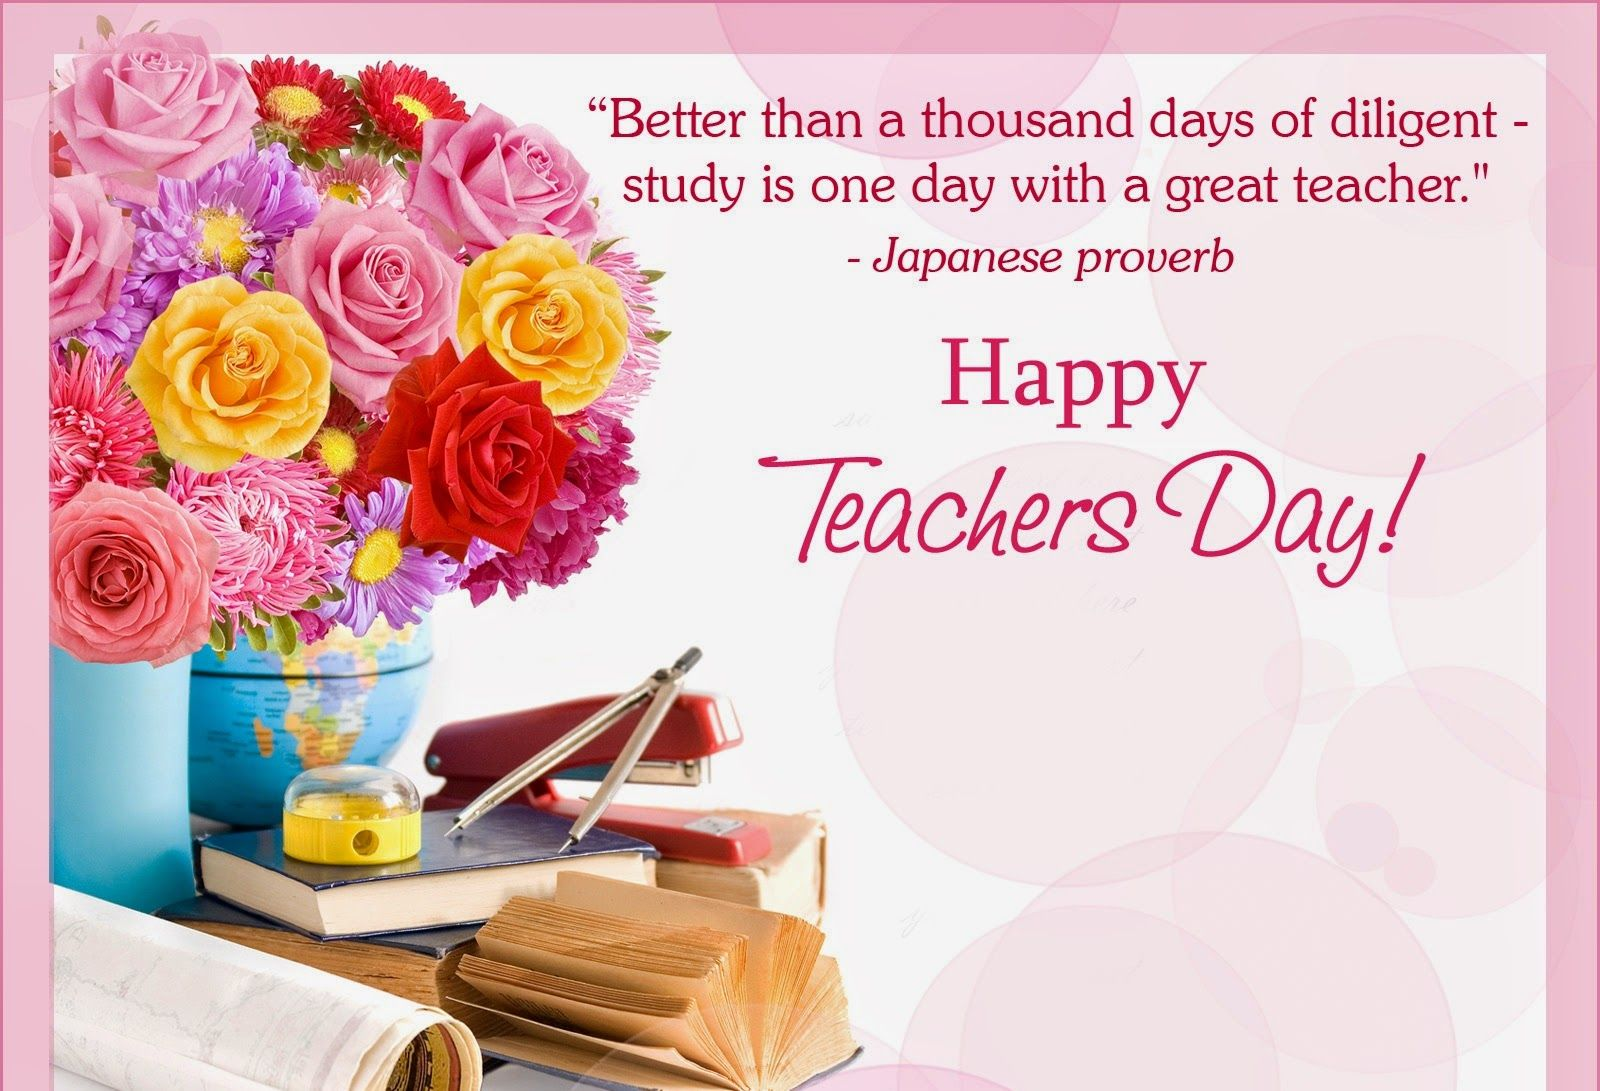 Speech for teachers day images pictures photos for children 2015 happy teachers day messages images pictures hd wallpapers for students 2015 kristyandbryce Image collections